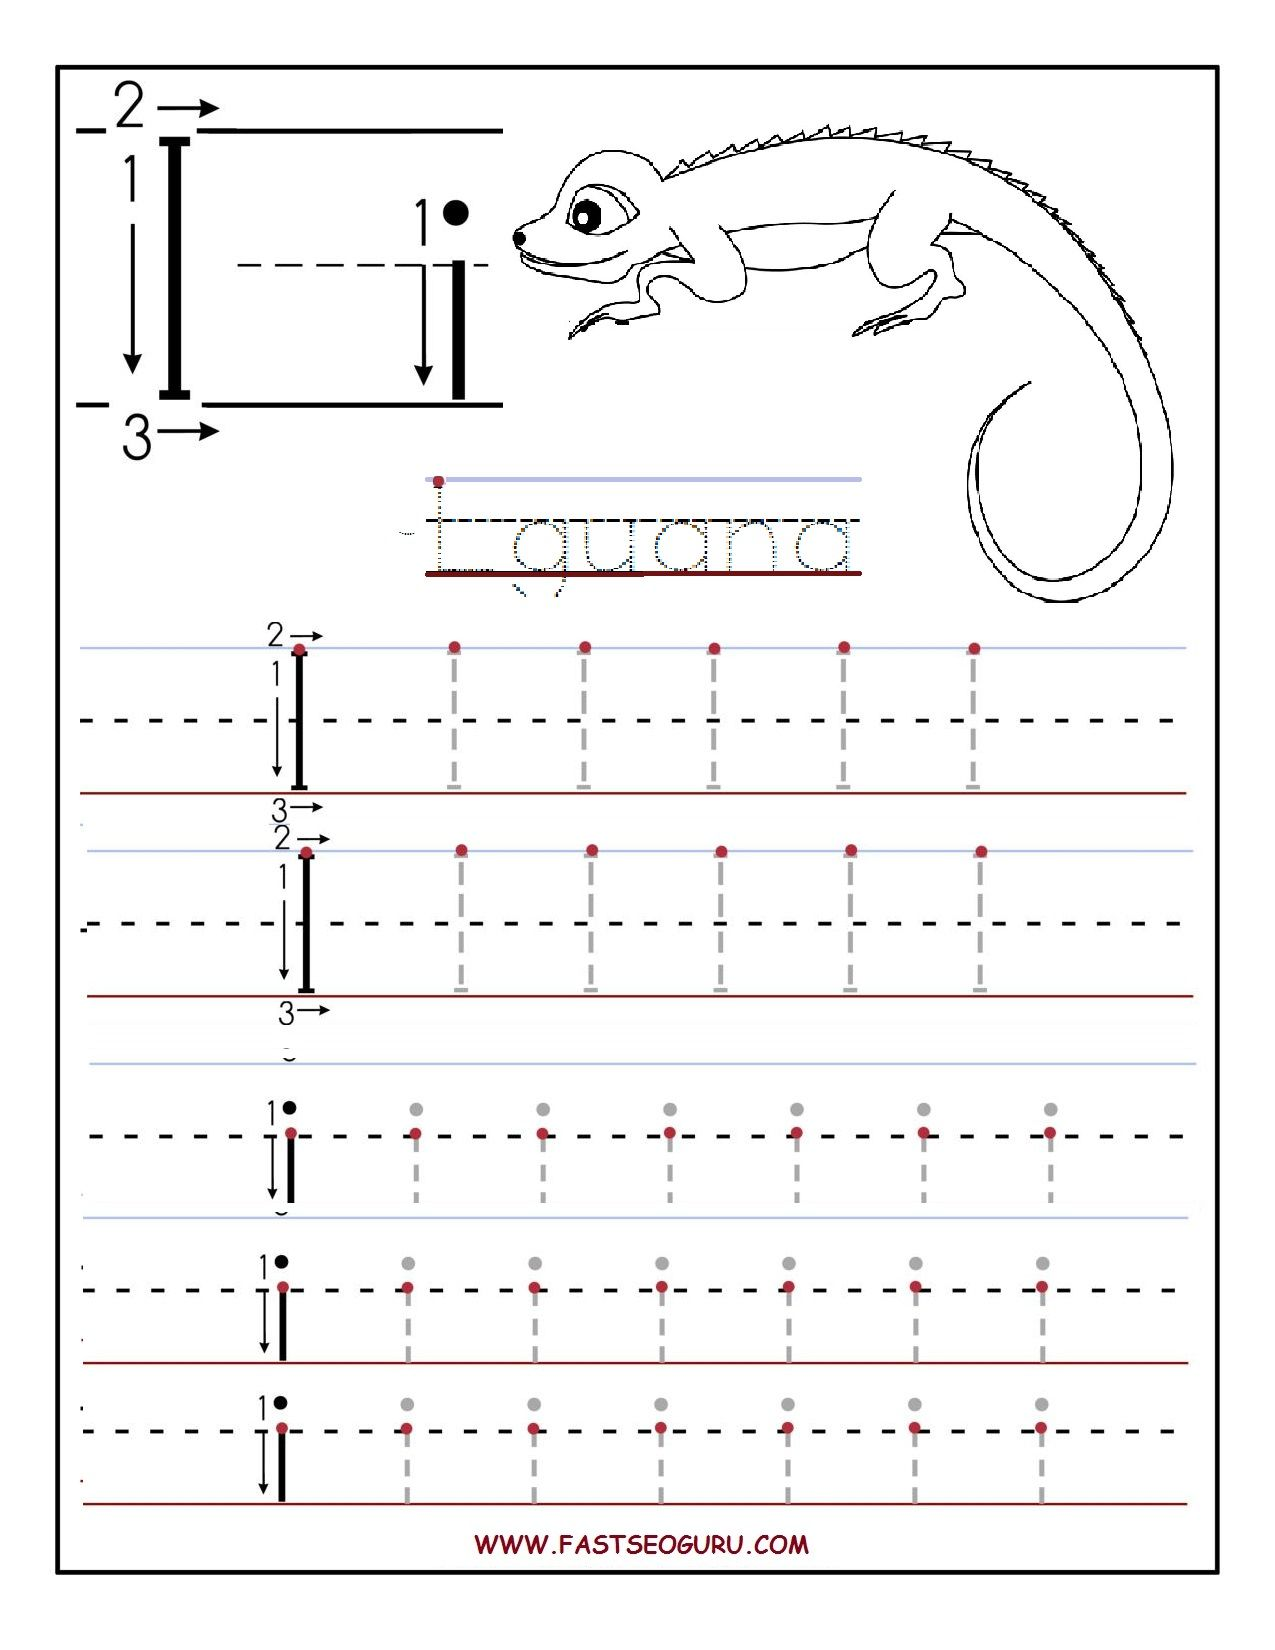 Printable Letter I Tracing Worksheets For Preschool 1 275 1 650 Pixels